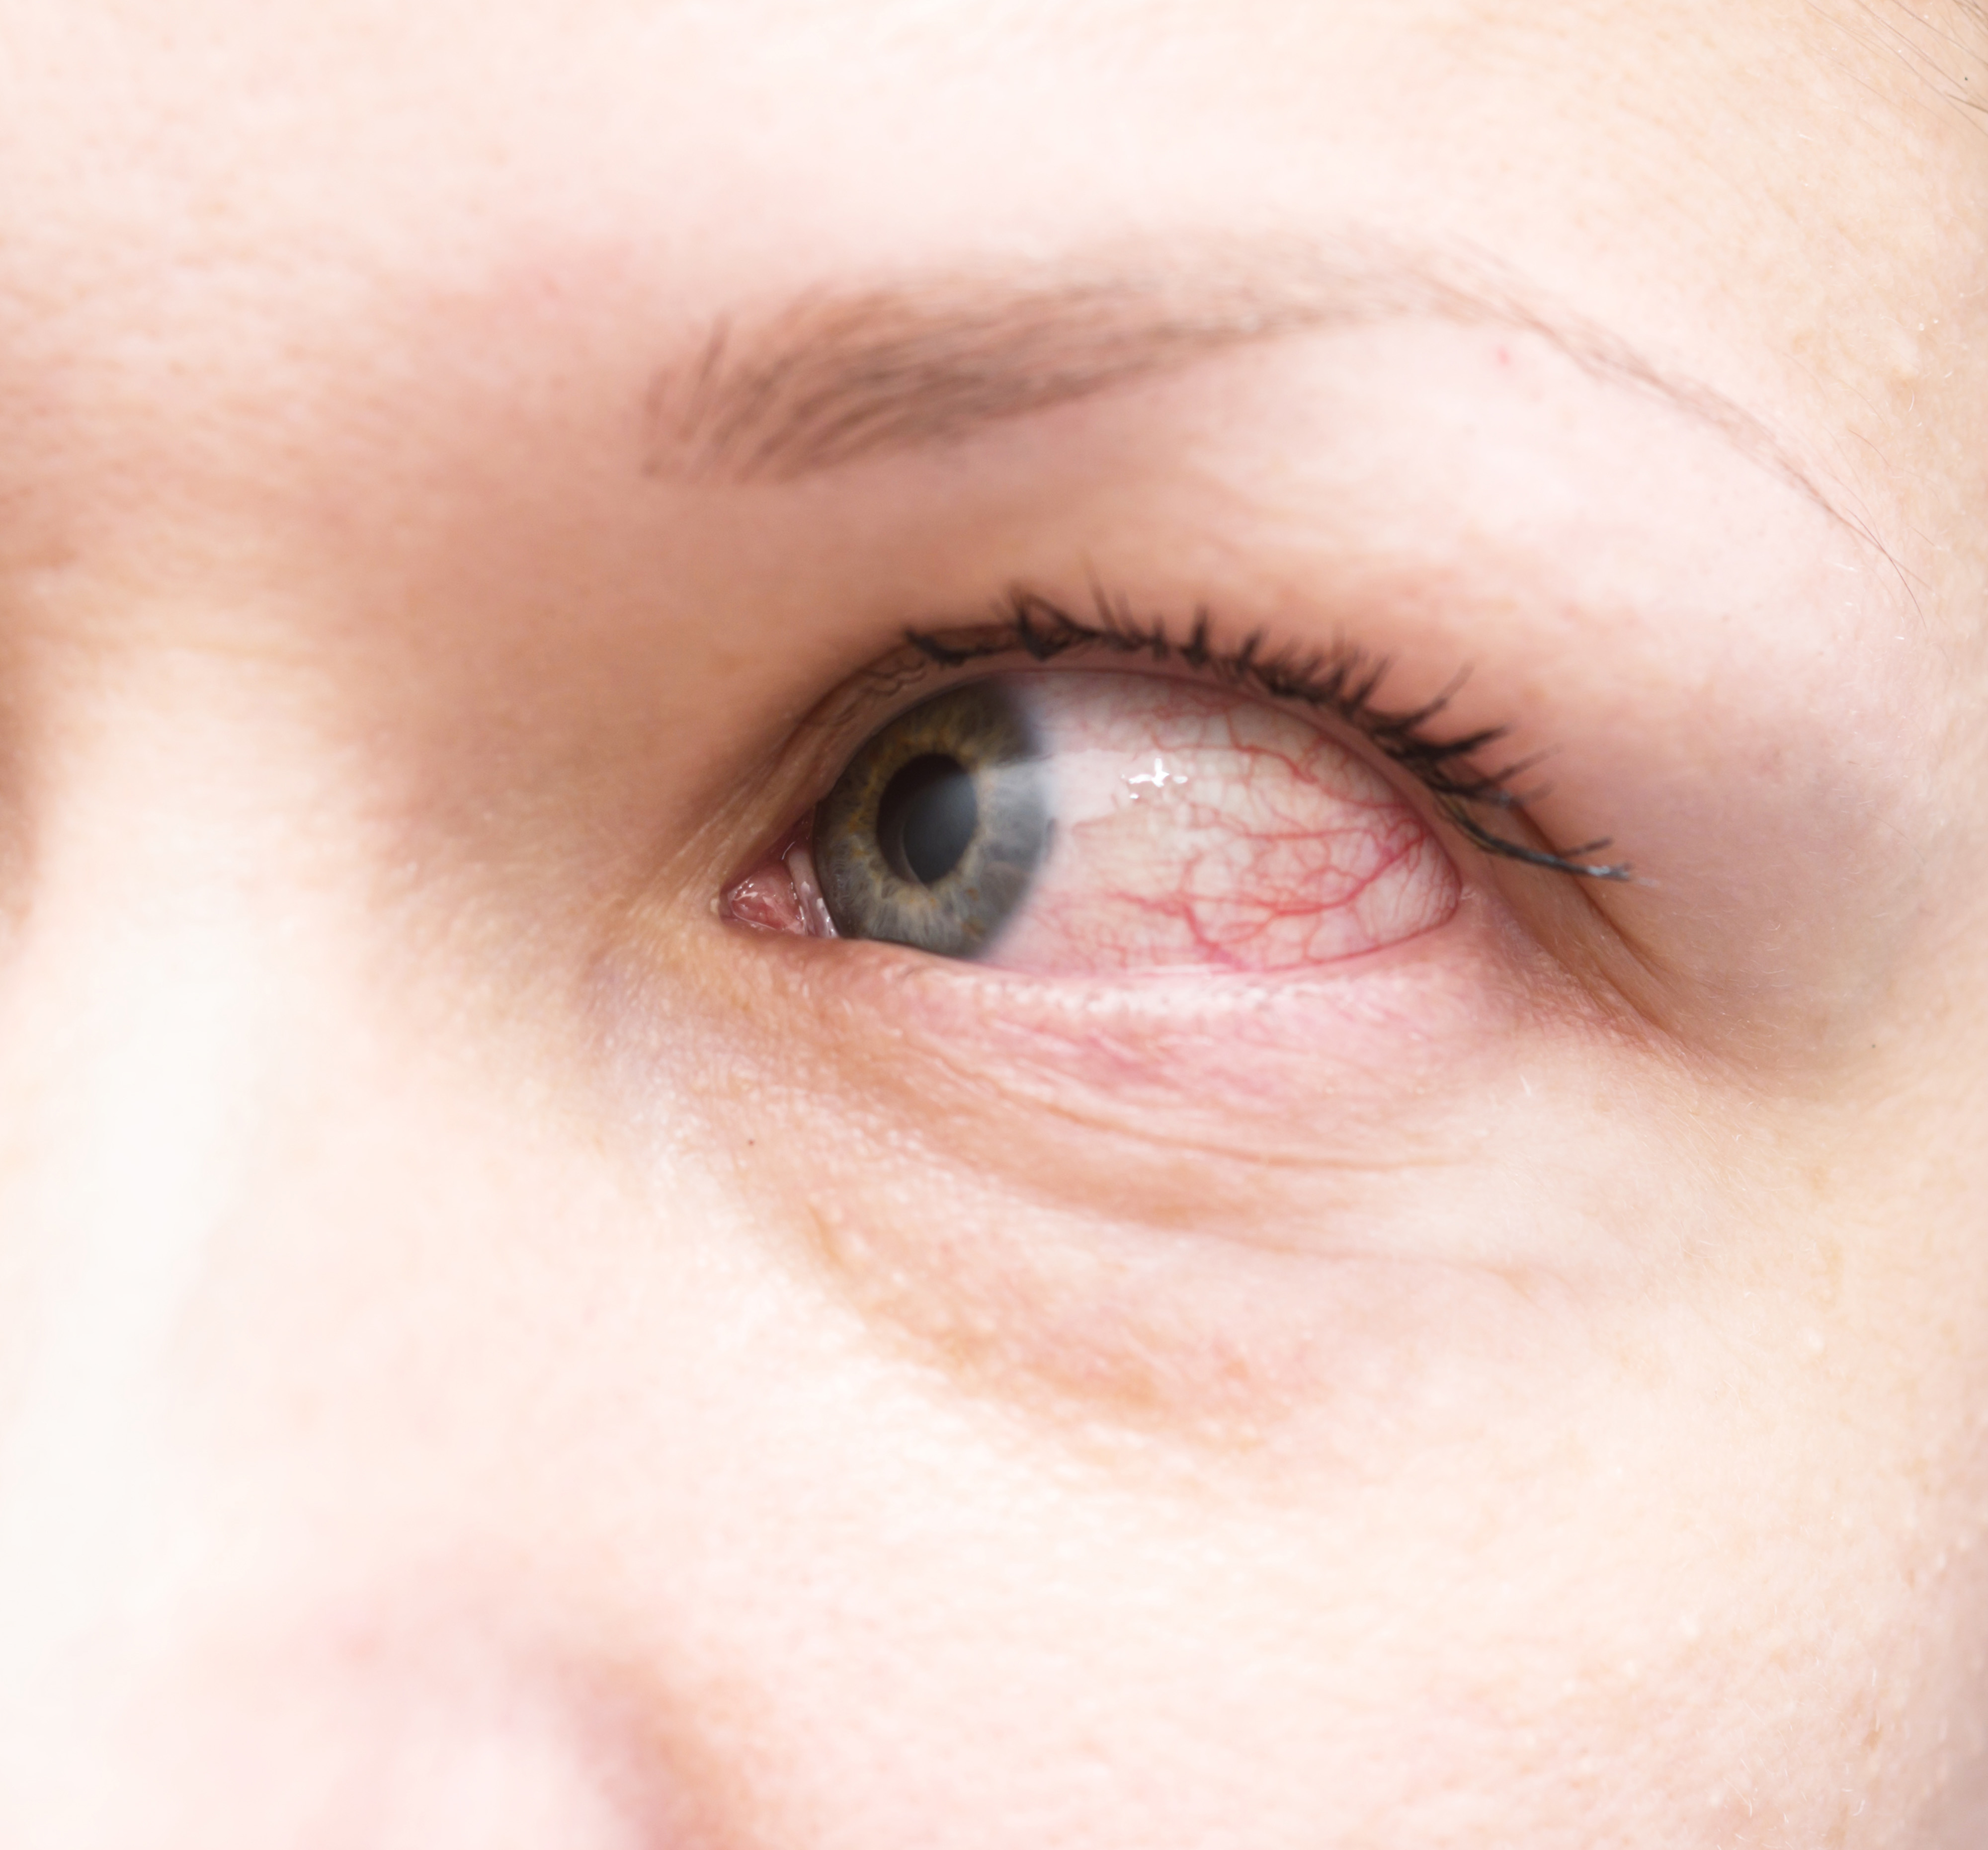 Allergic Conjunctivitis Vs Bacterial Pictures To Pin On: 9 Causes Of Red Eyes